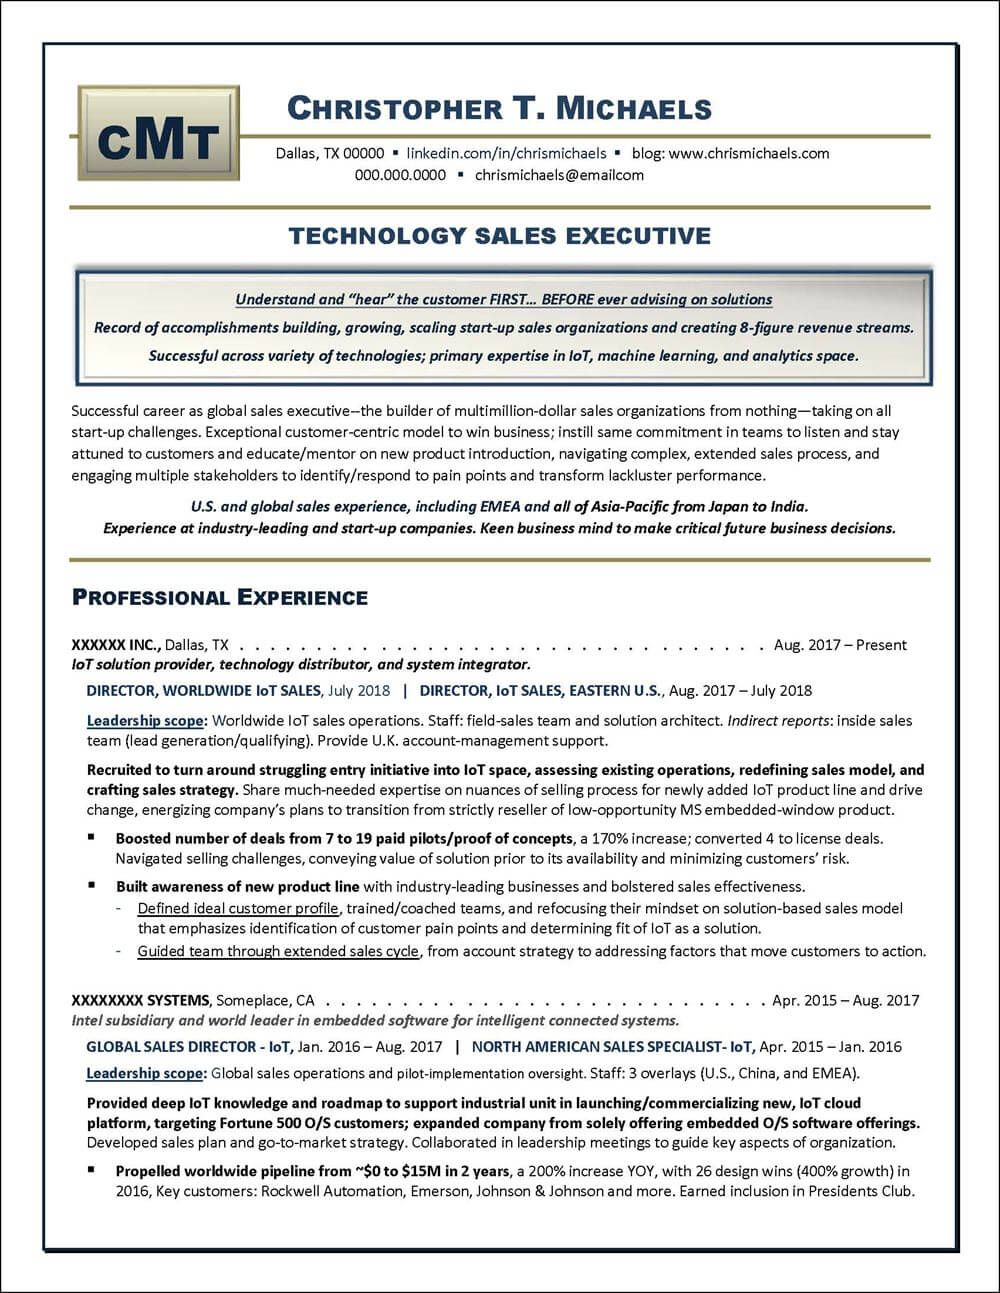 Example of technology sales executive resume with eye